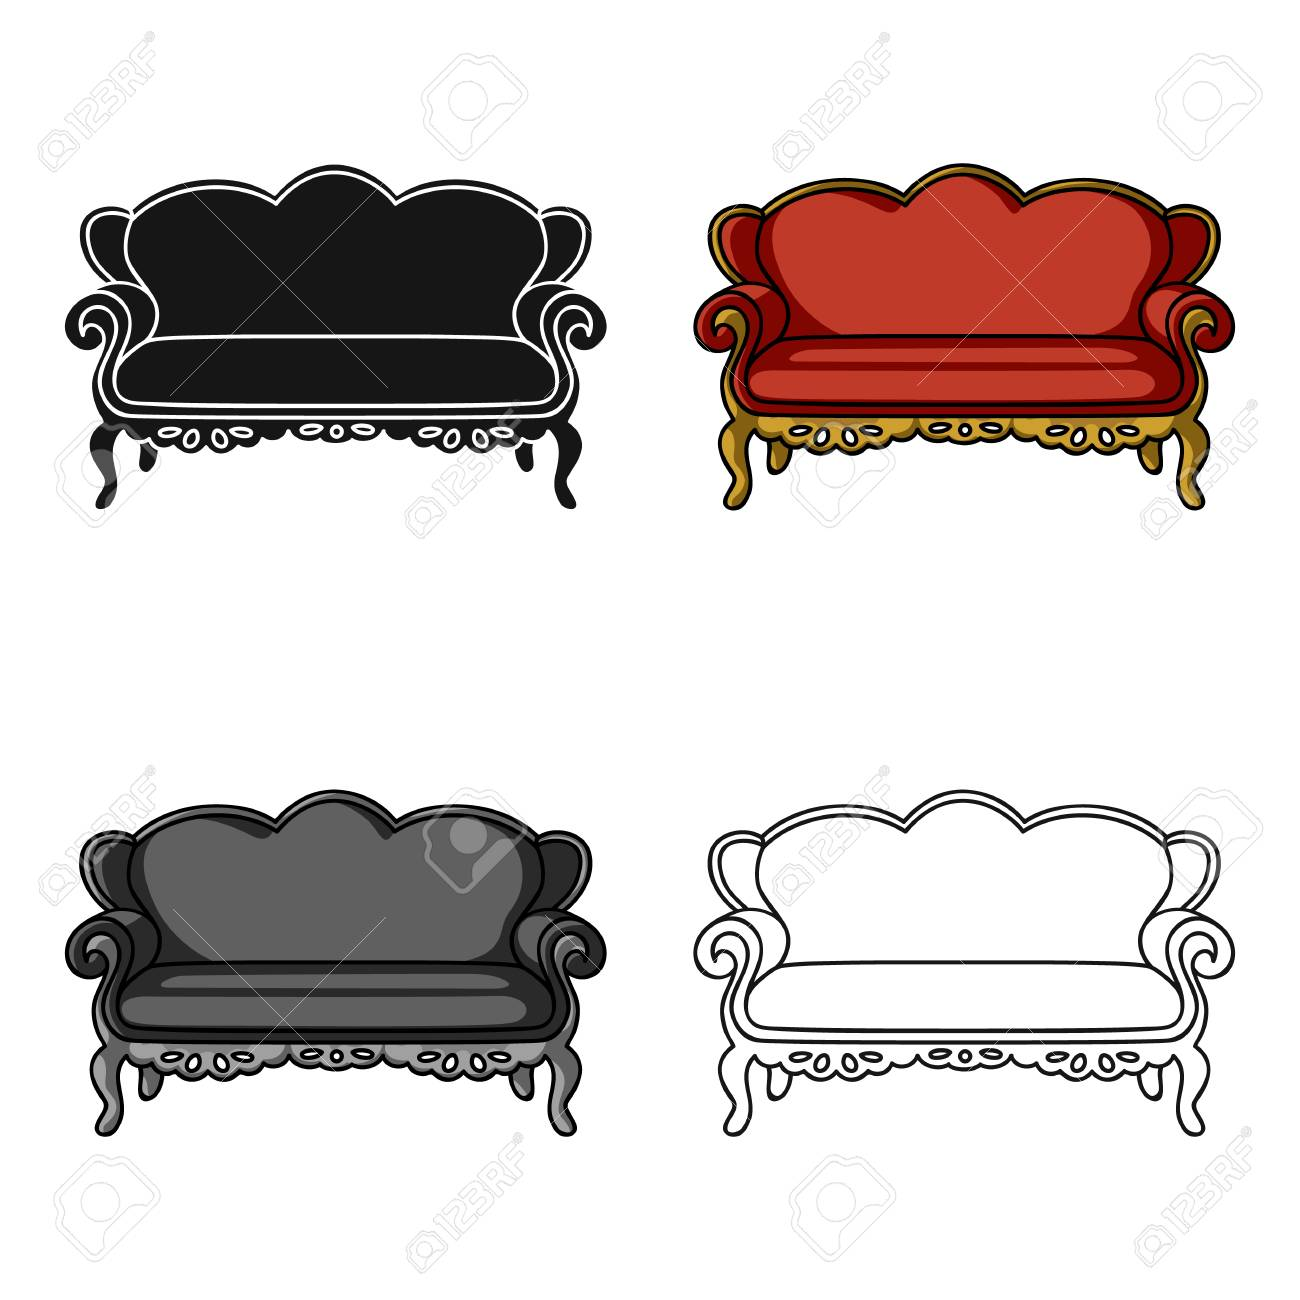 Vintage Sofa Icon In Cartoon Style Isolated On White Background